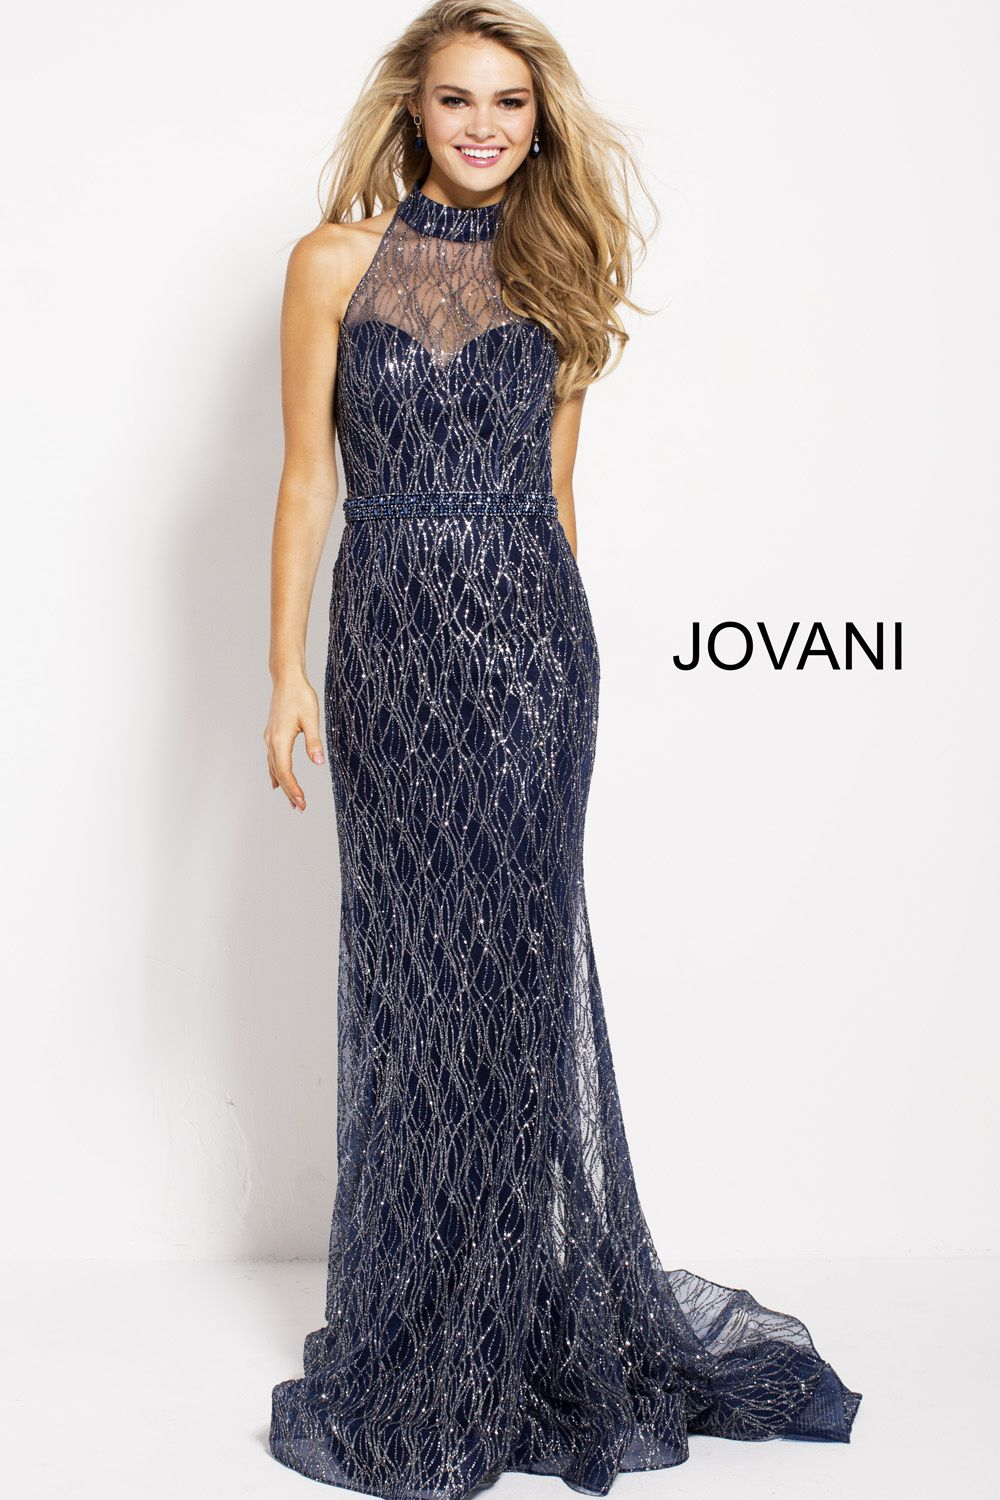 Where To Get Homecoming Dresses In York Pa